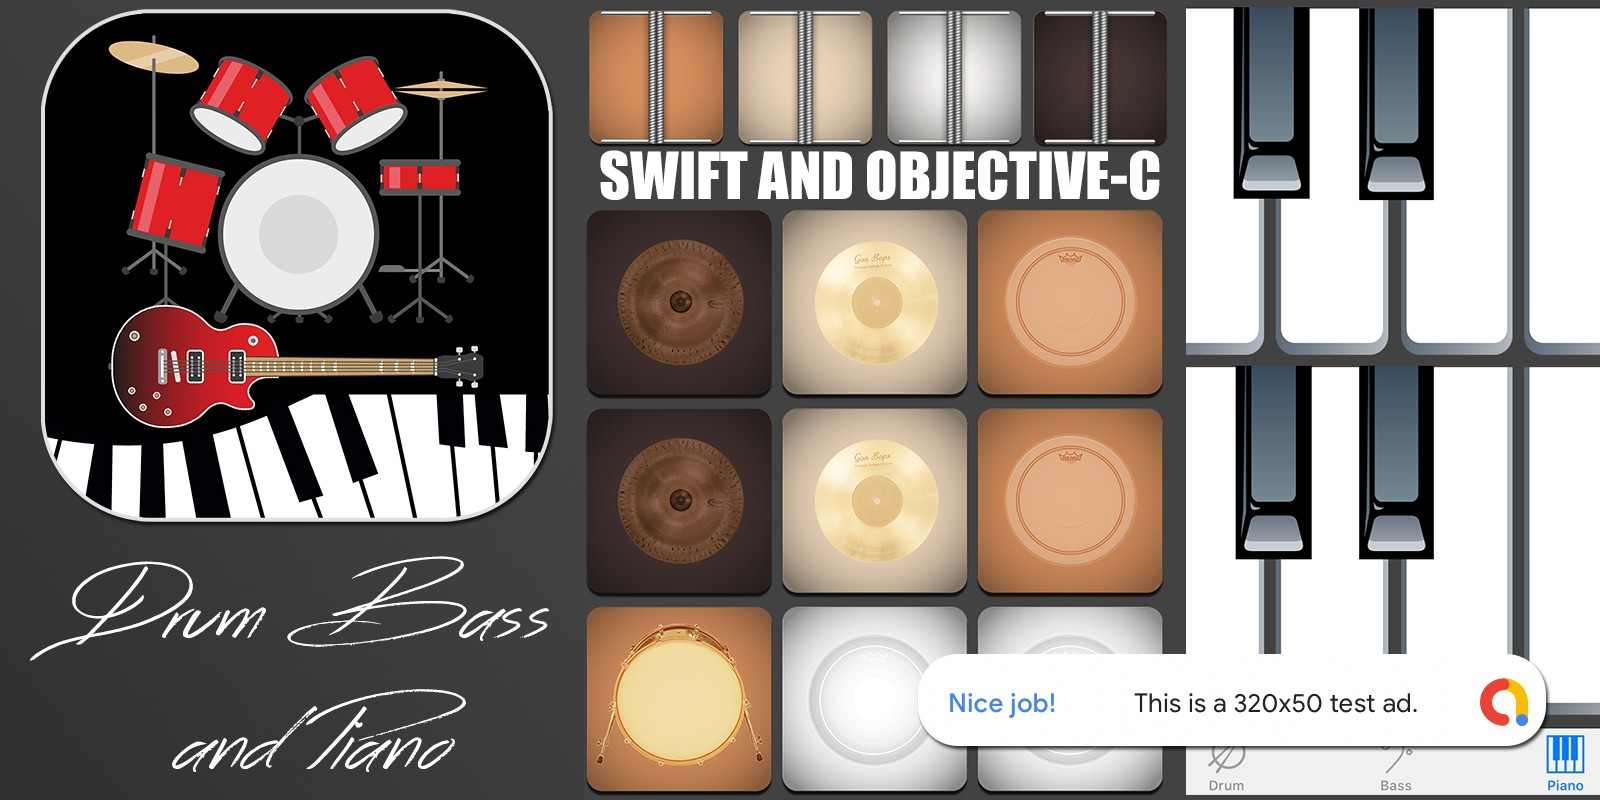 Drum And Bass App For iPhone With AdMob Banner